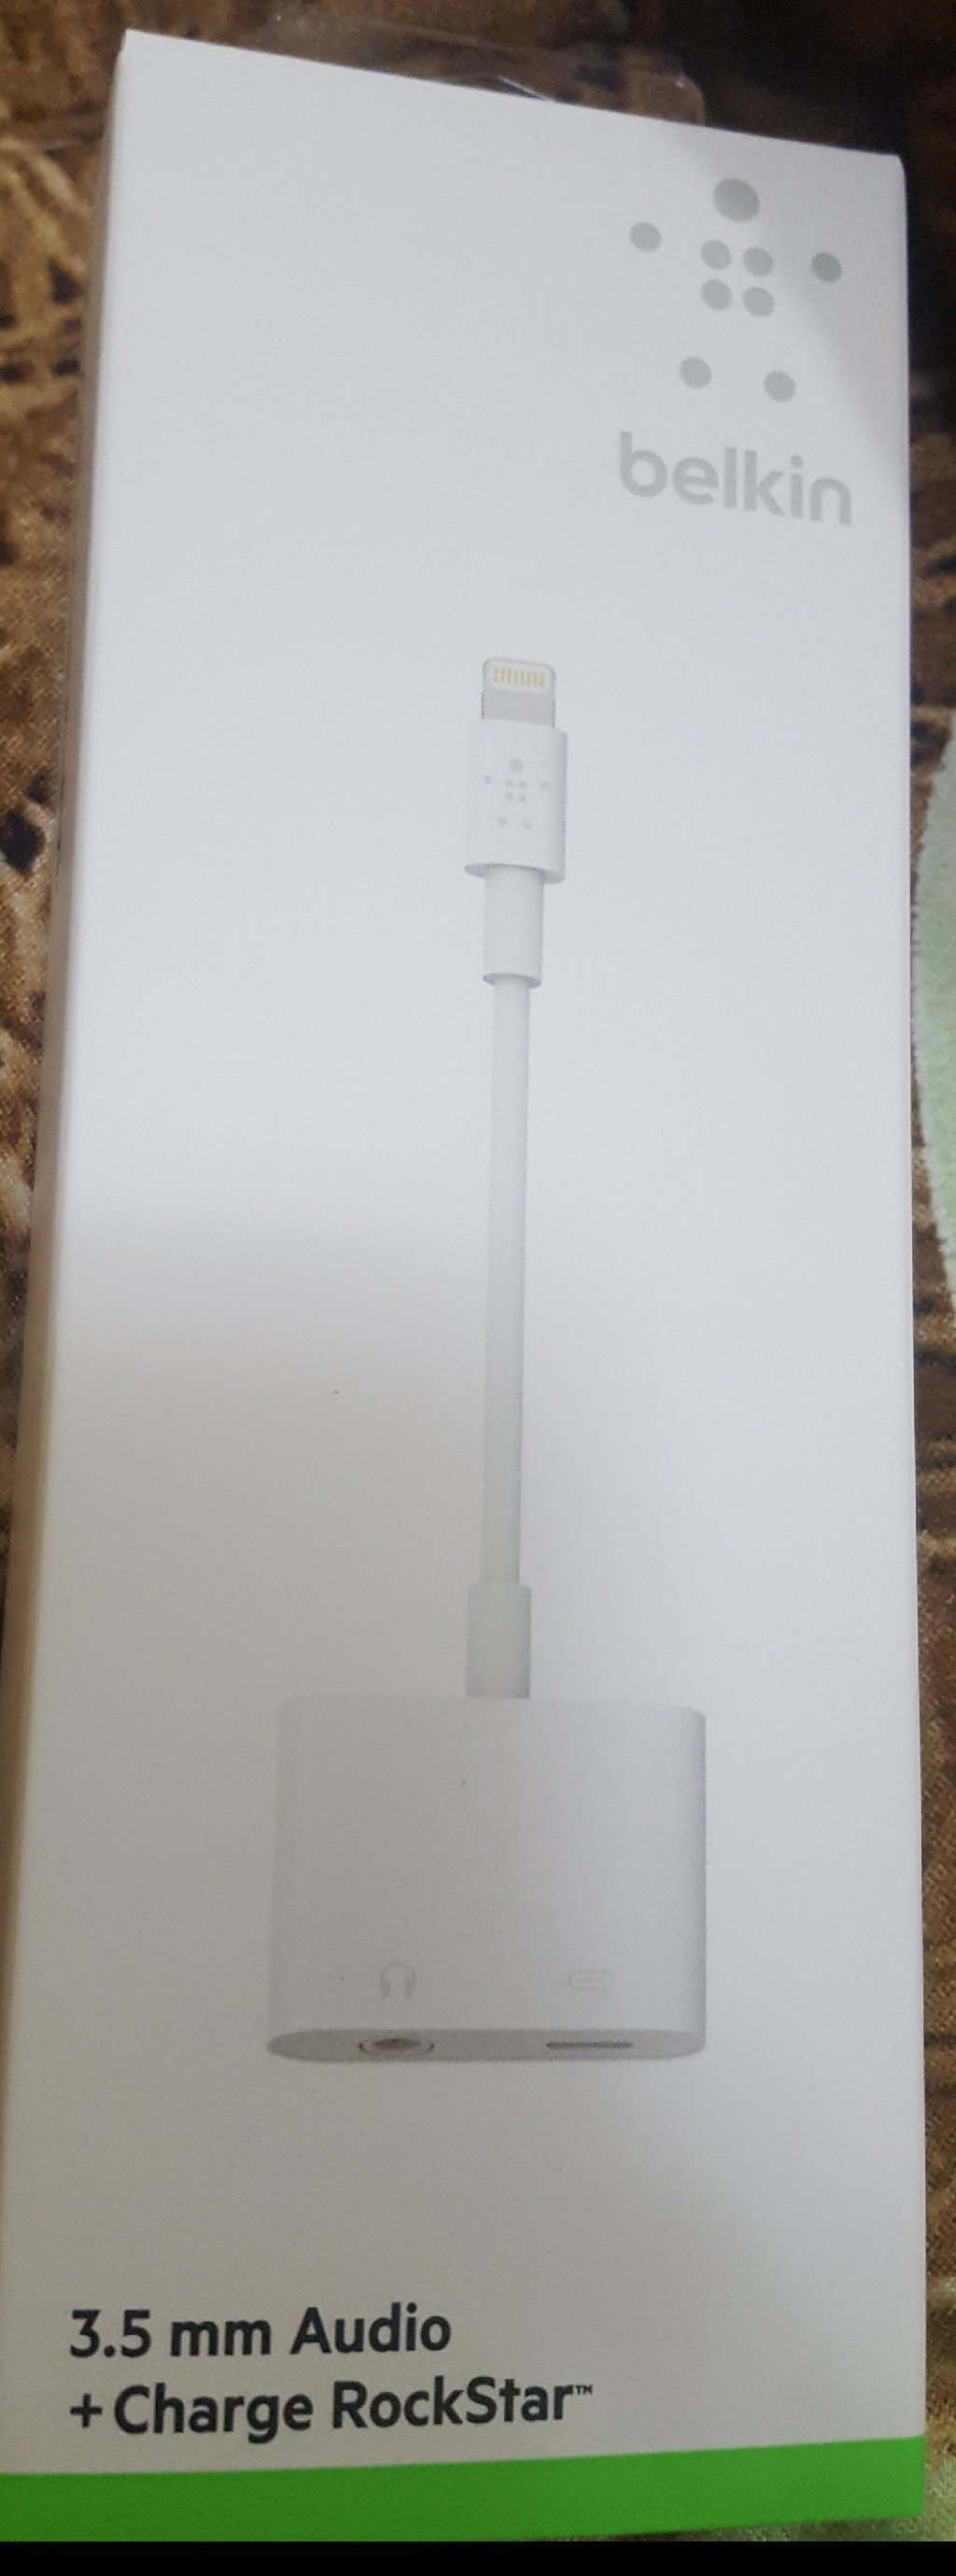 3.5mm audio charger for IPhone